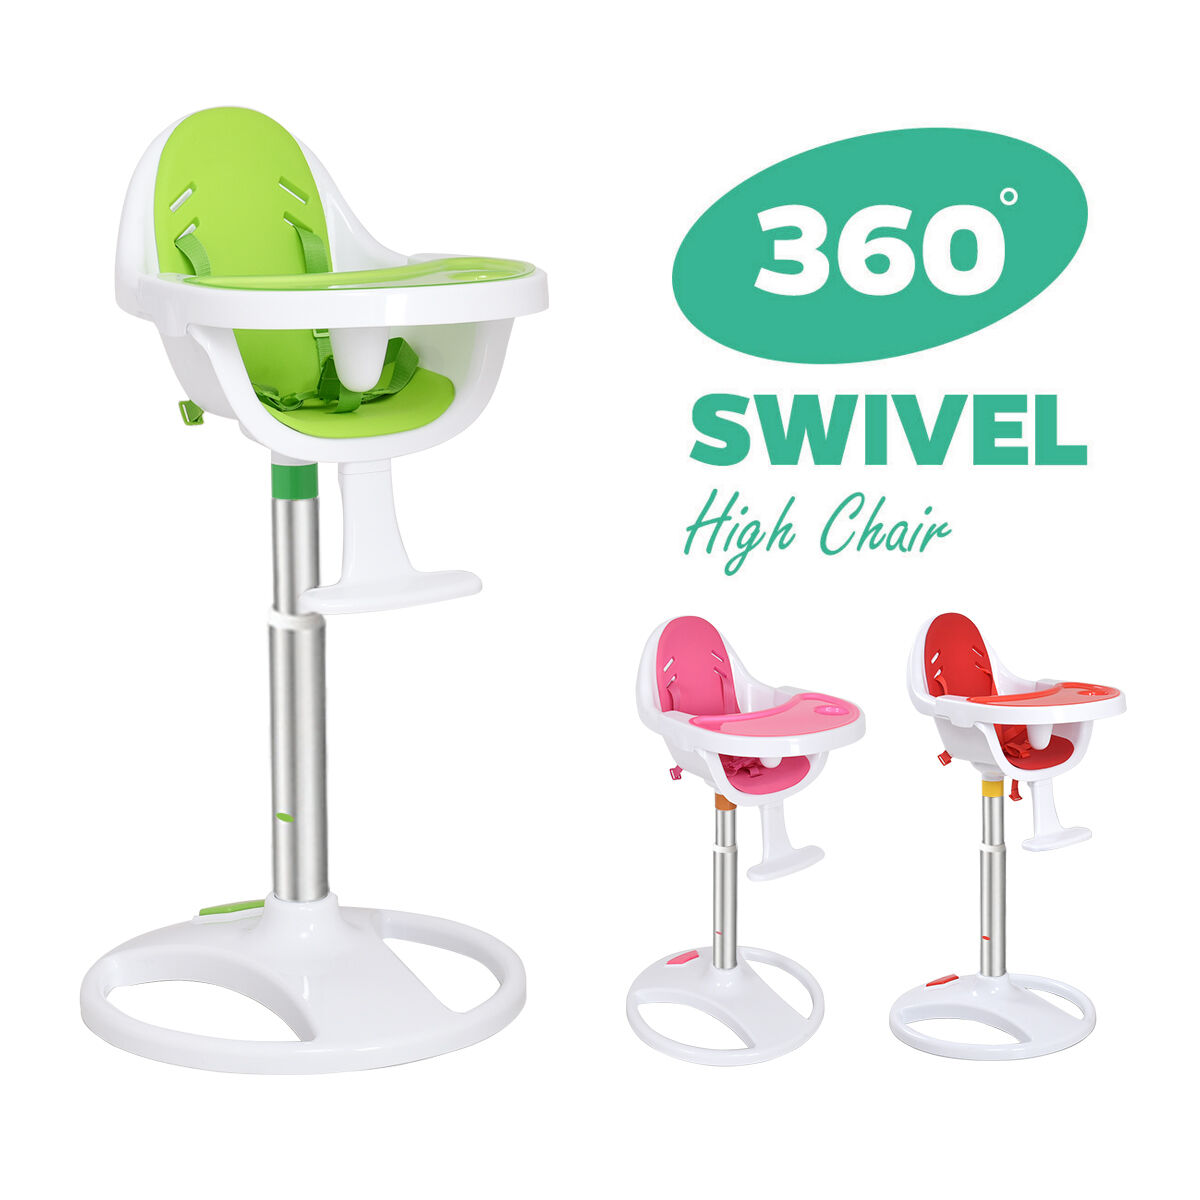 swivel high chair baby library ladder australia 360 adjustable 5 point safety